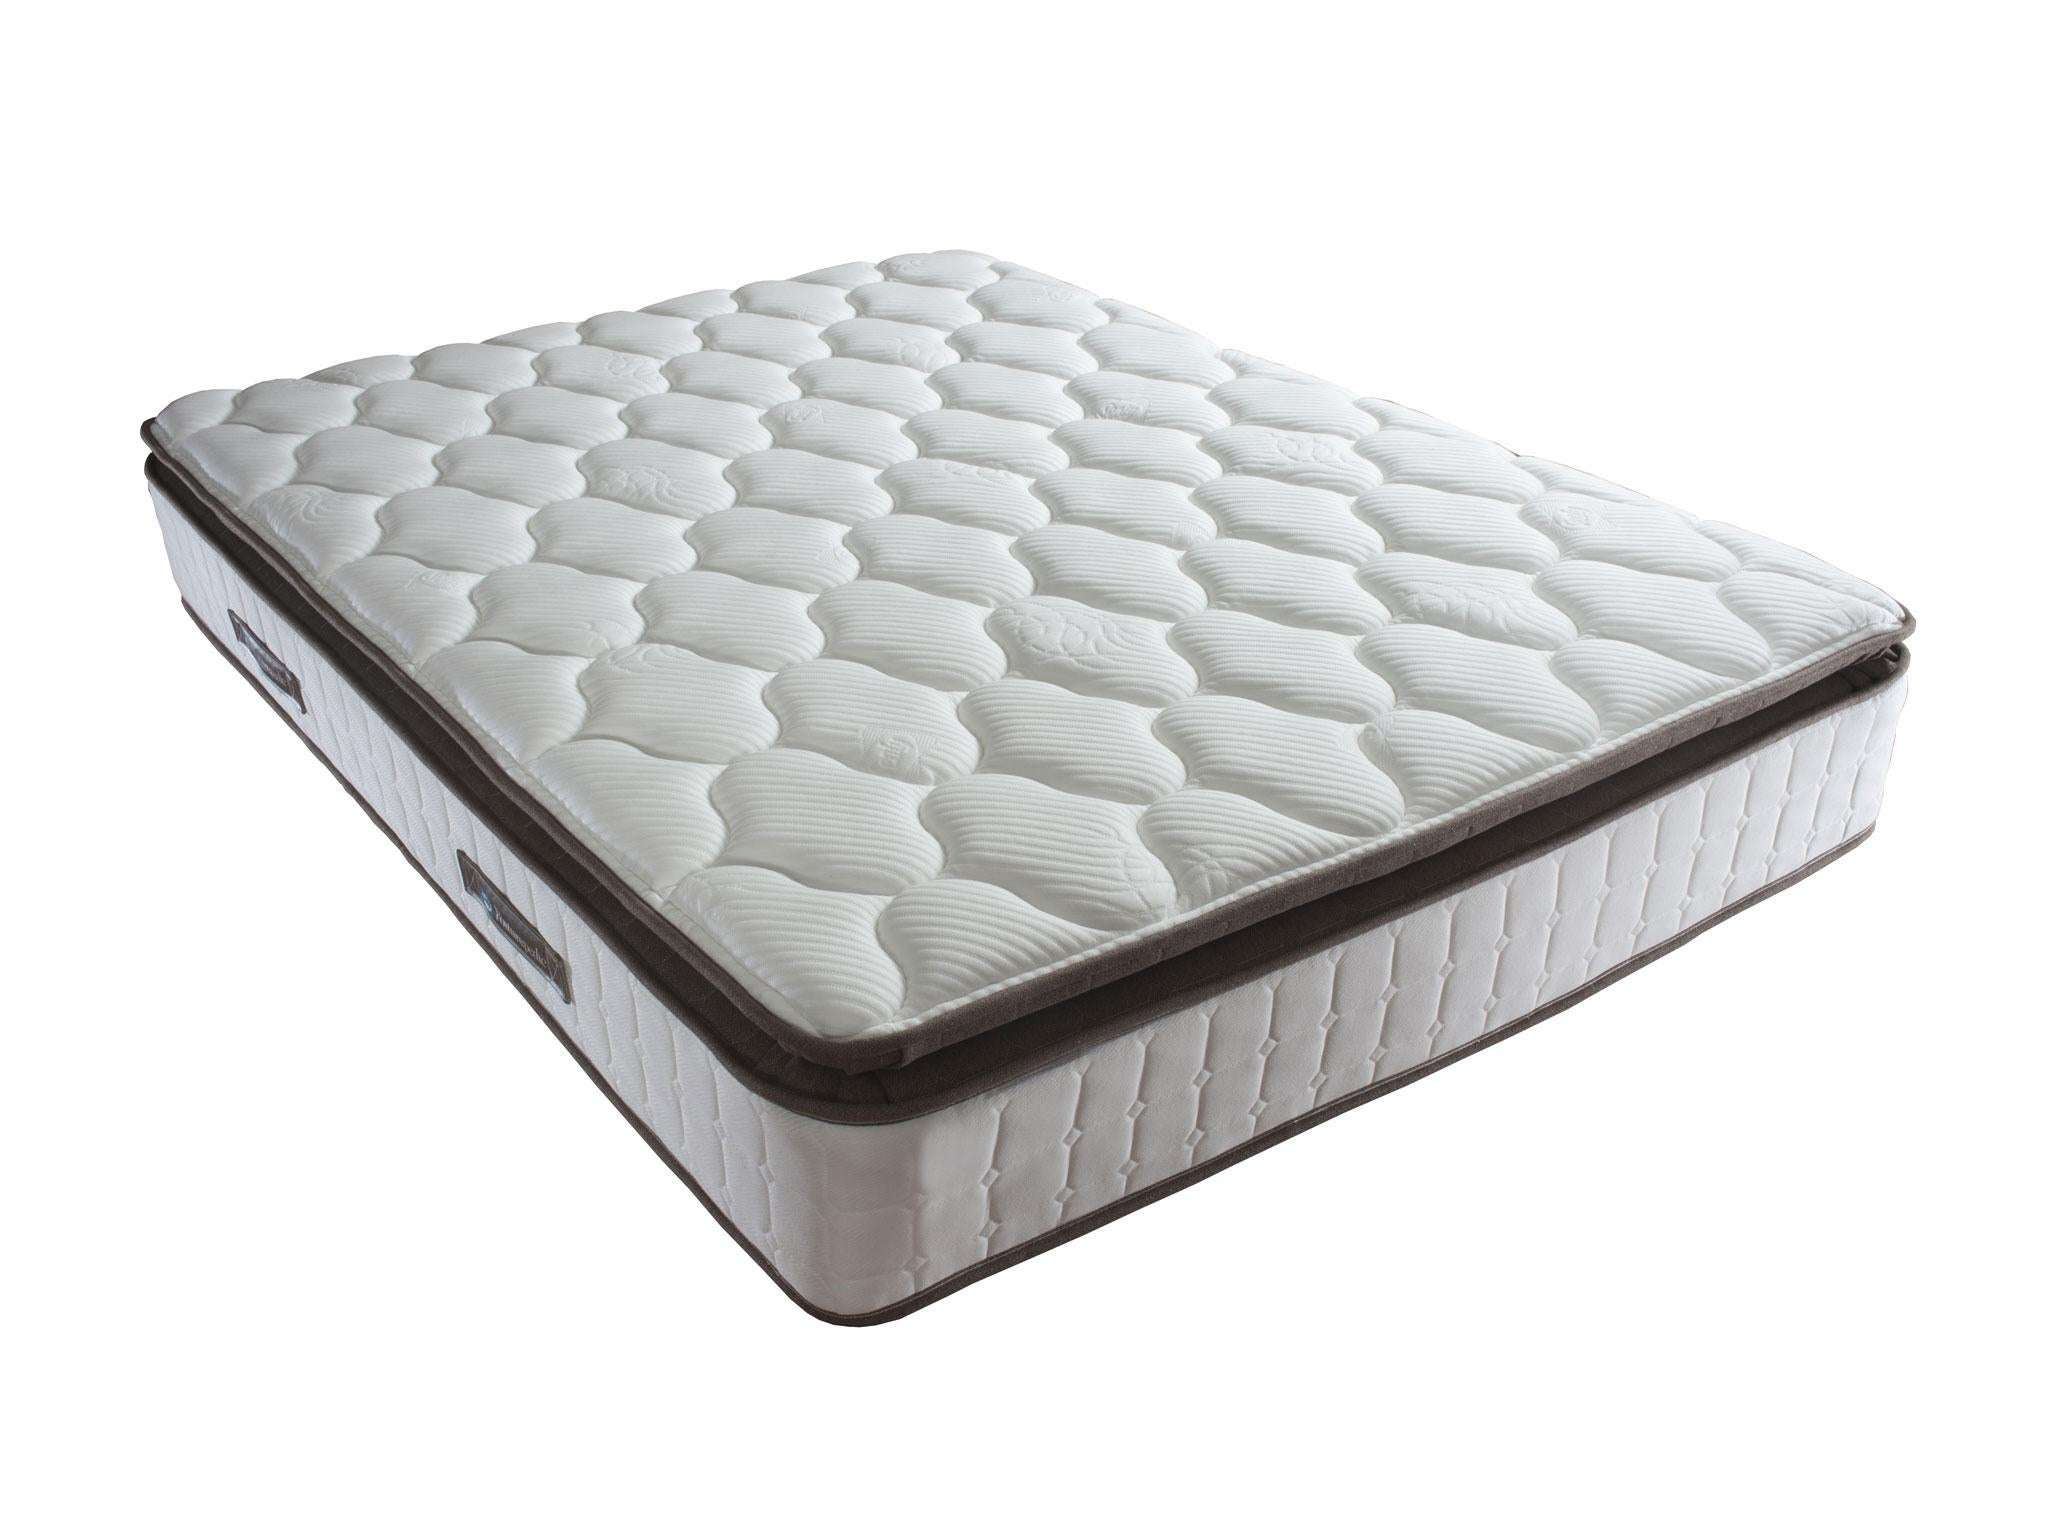 most mattress macy comforter firm s ce cushion guide mattresses comfortable buying shop best